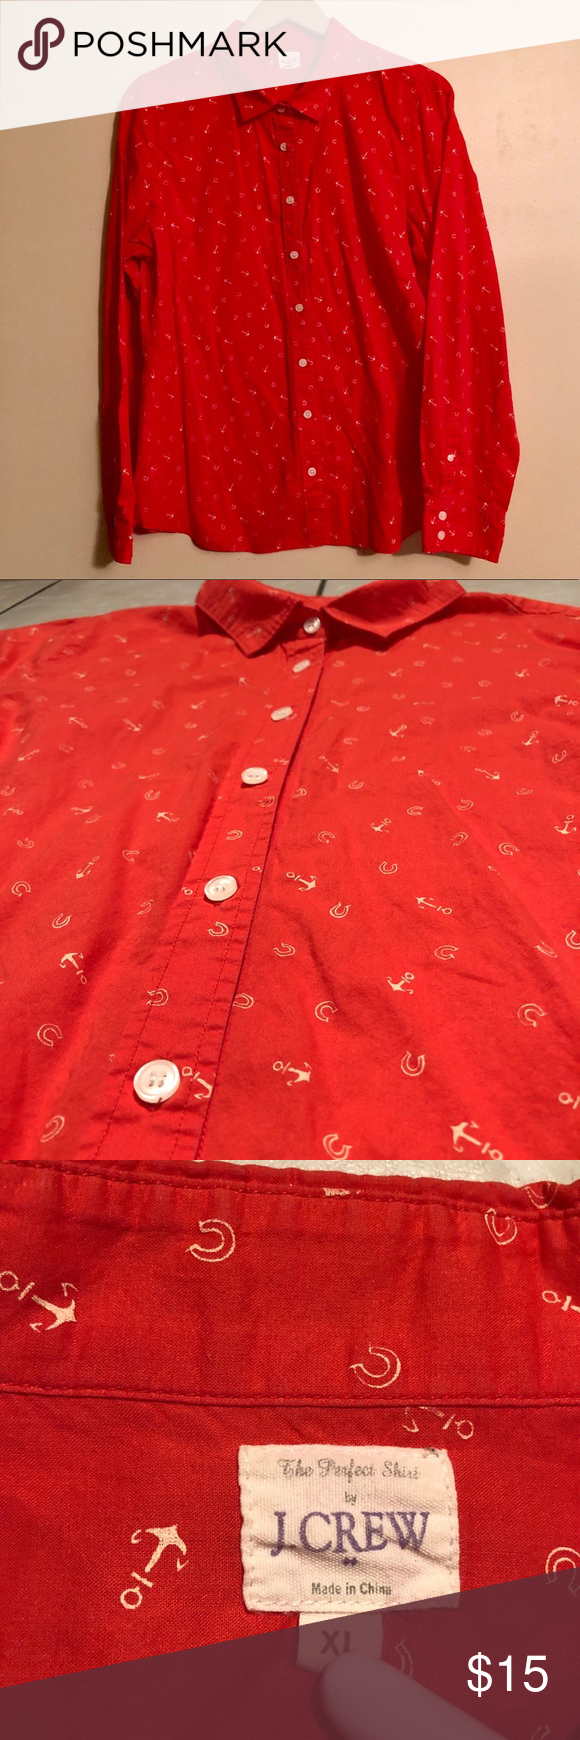 """c520267a The Perfect Shirt in Anchors & Horseshoes Nautical """"The Perfect Shirt """" by J.  Crew. Light, thin cotton red button down with faint anchors and horseshoes."""